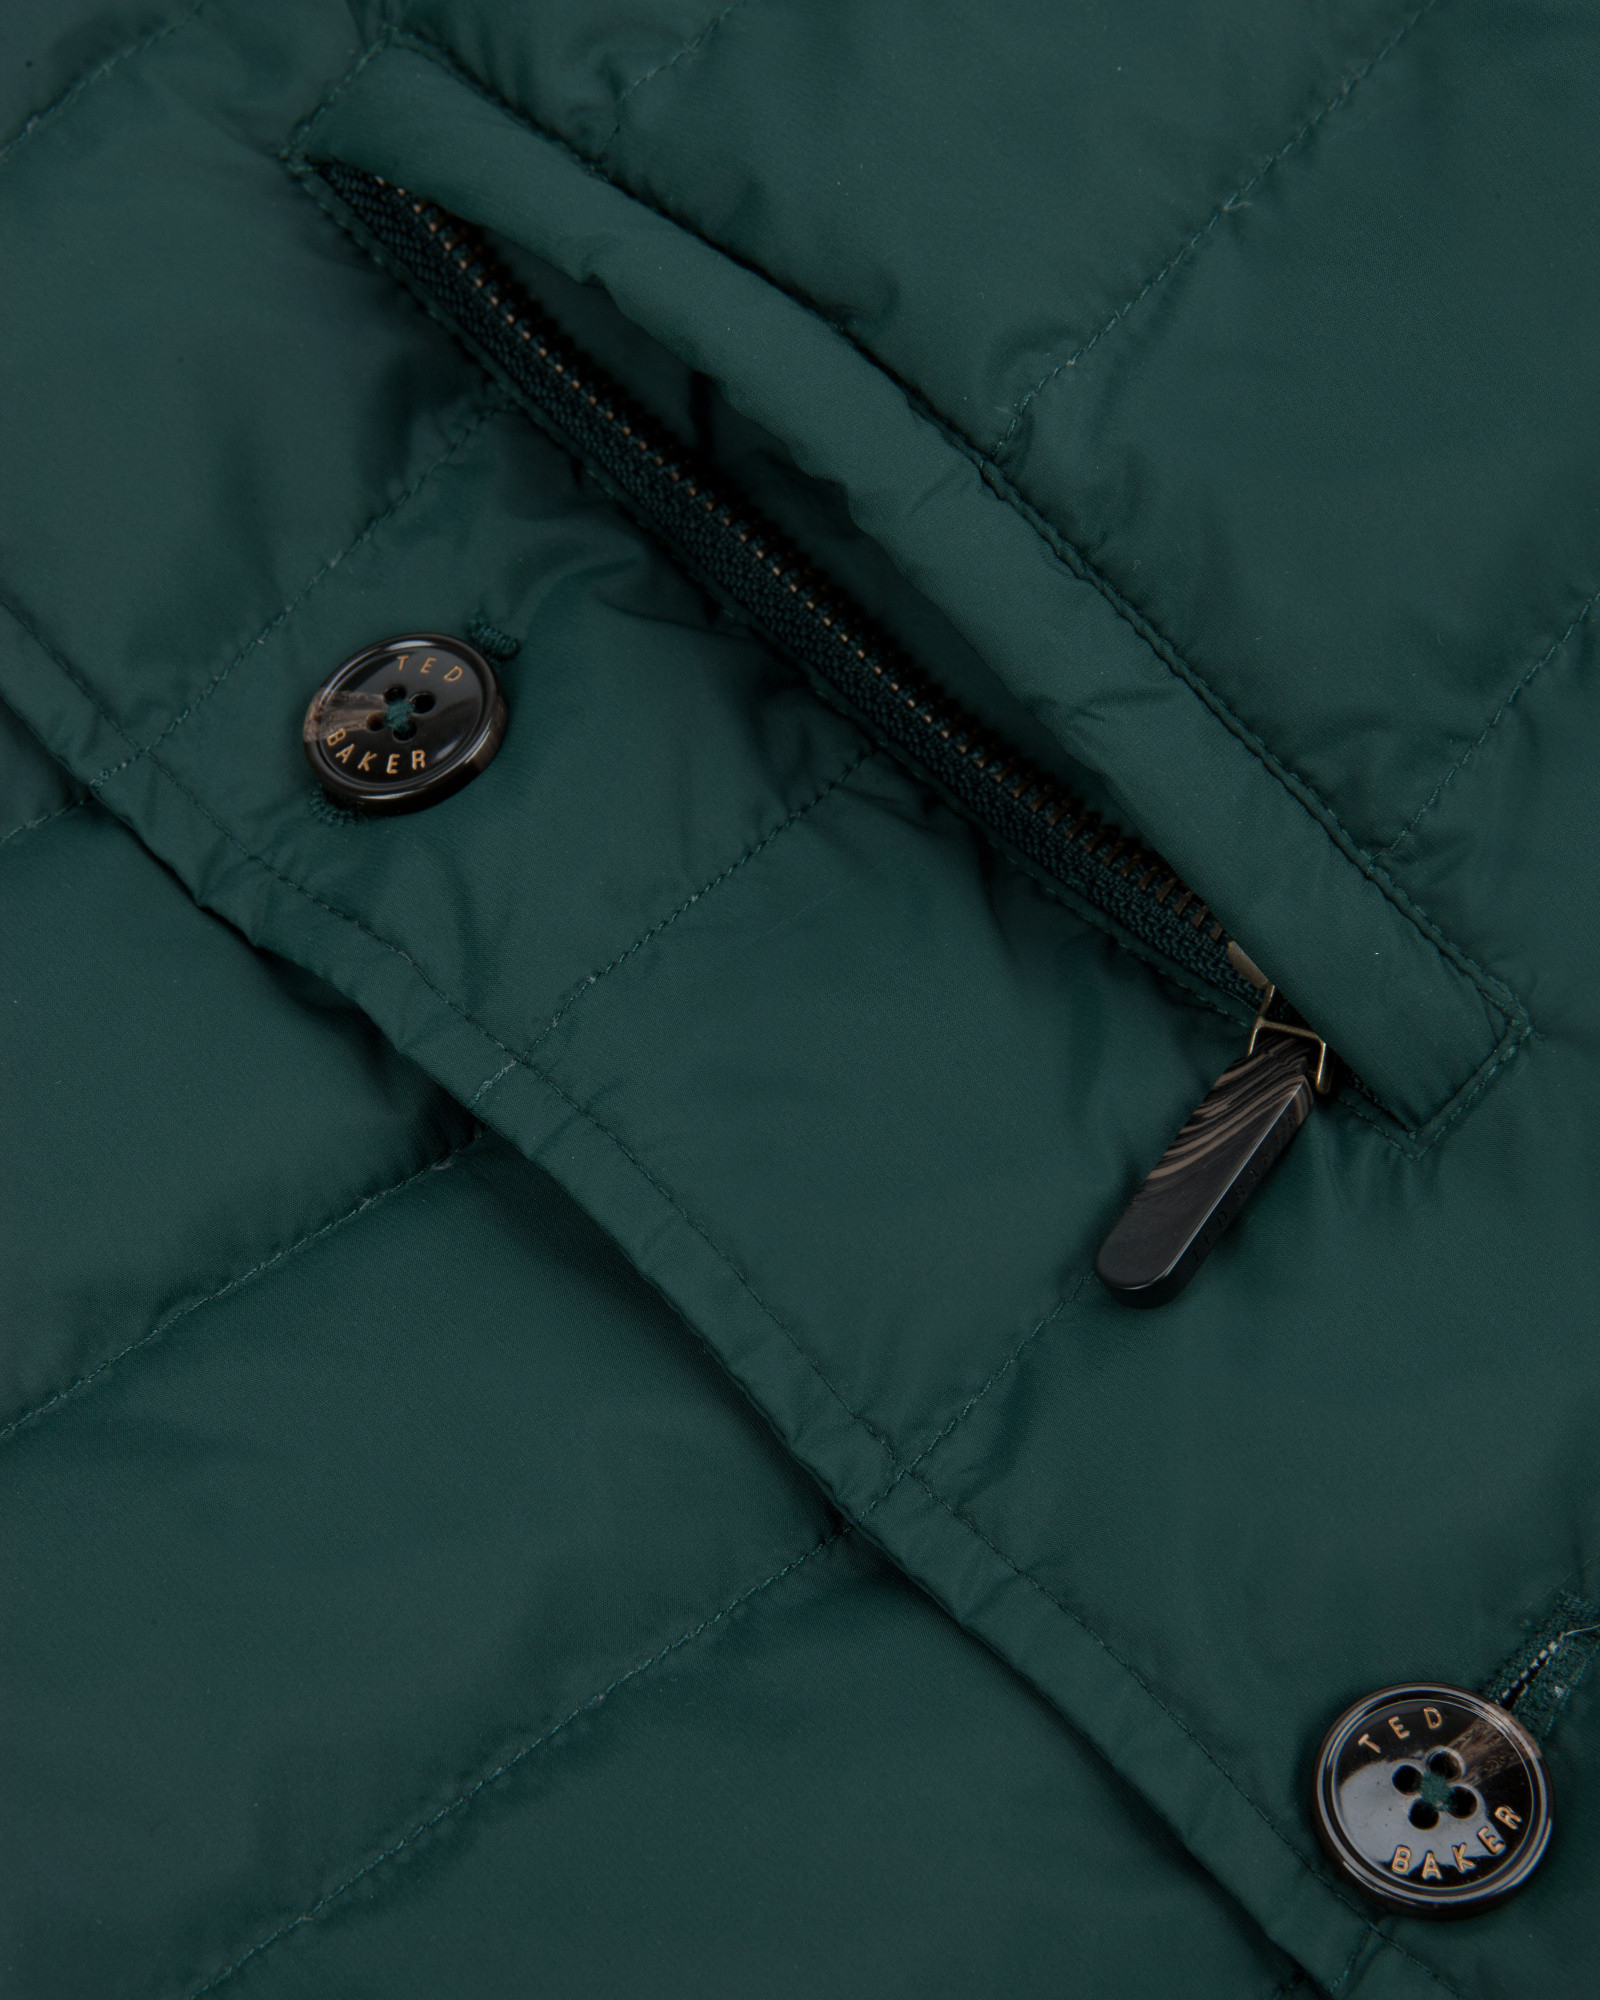 Ted Baker Quilted Jacket in Dark Green (Green) for Men